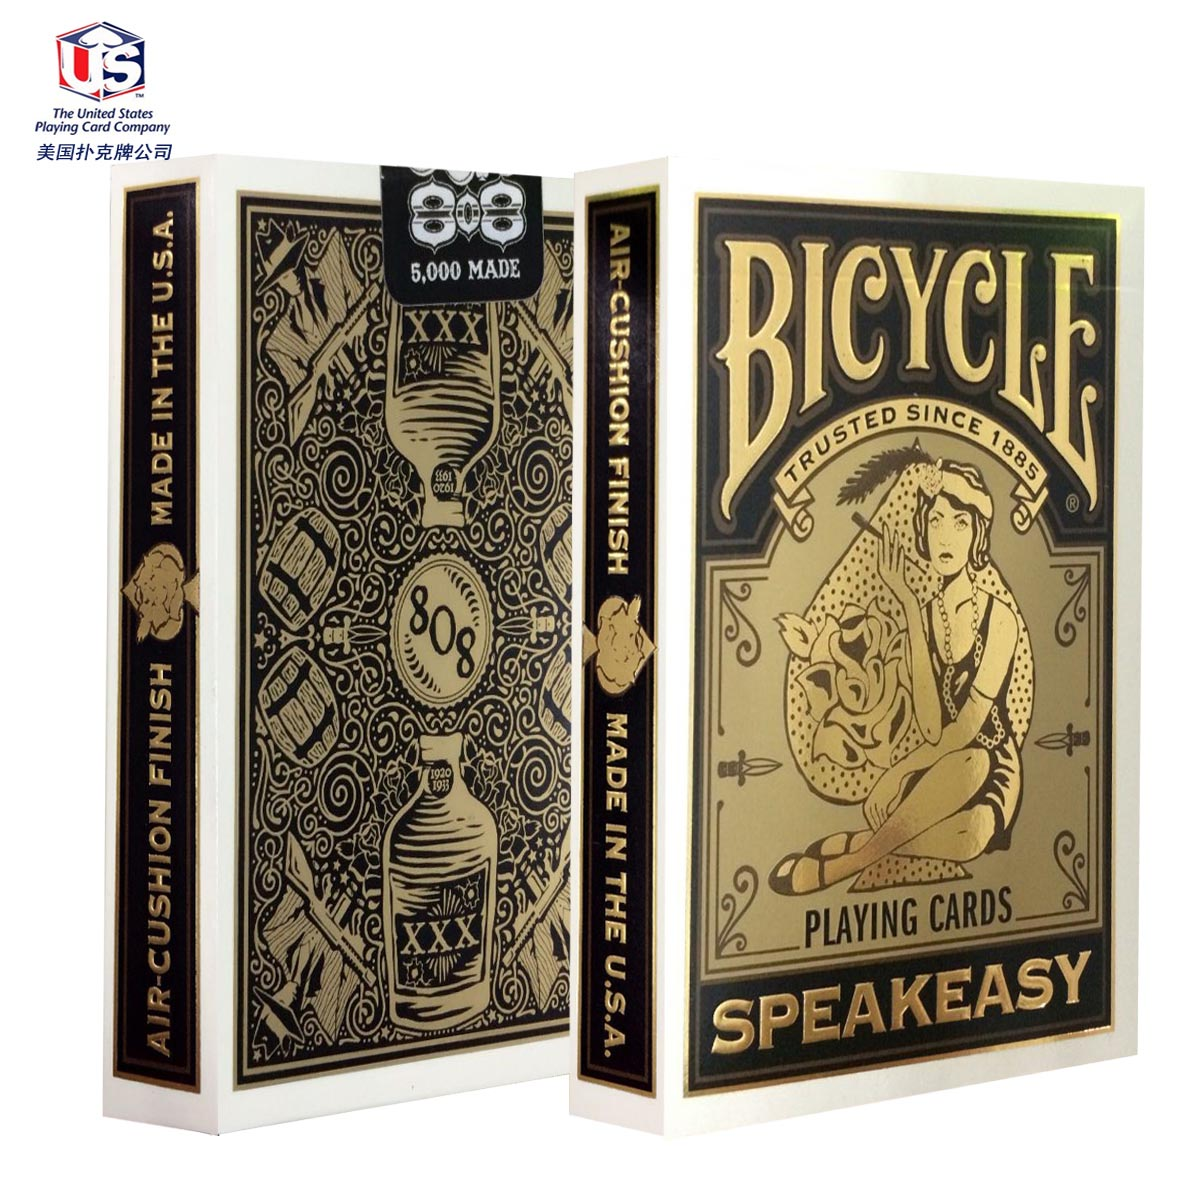 Underground poker single license plate poker cards bicycle speakeasy bar club 808